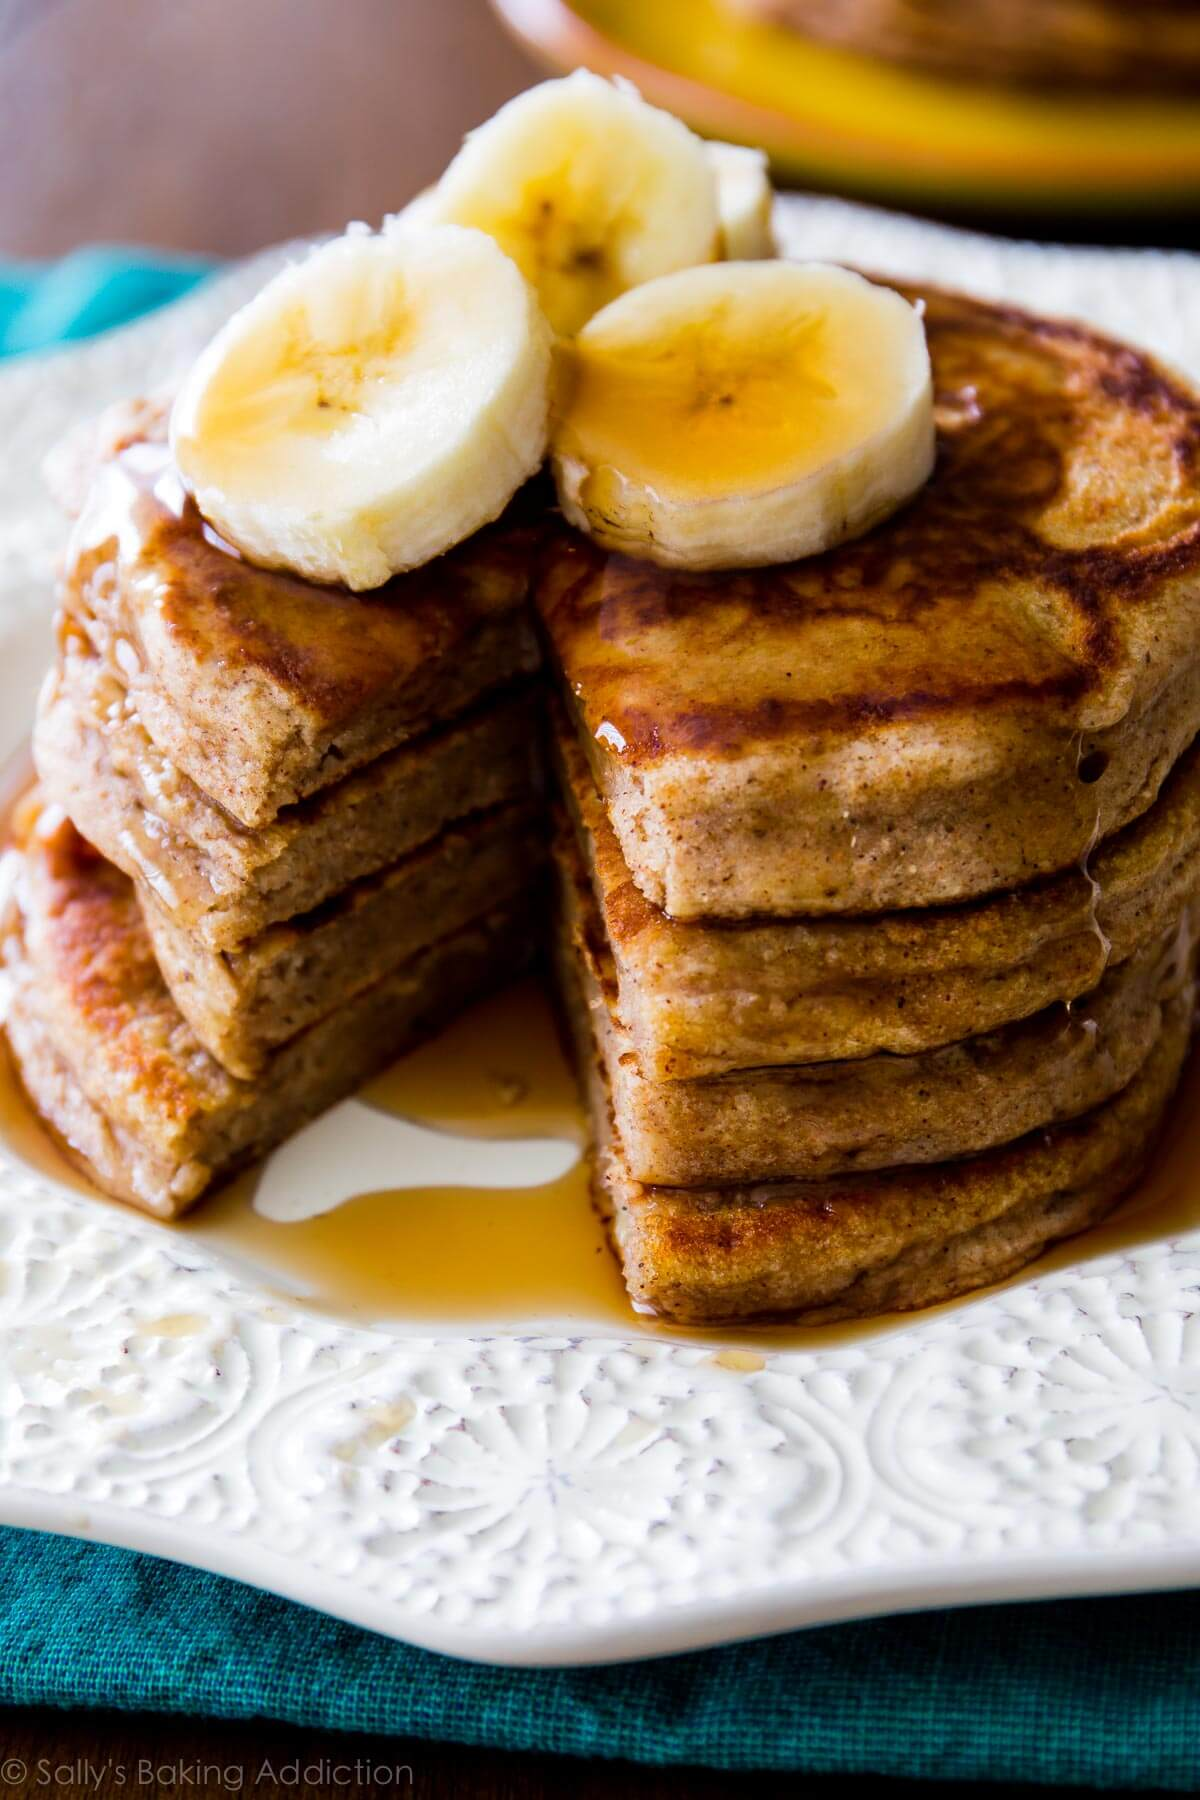 Simple Whole Wheat Banana Pancakes made with Greek yogurt, banana, whole wheat flour, and not much else! Recipe on sallysbakingaddiction.com